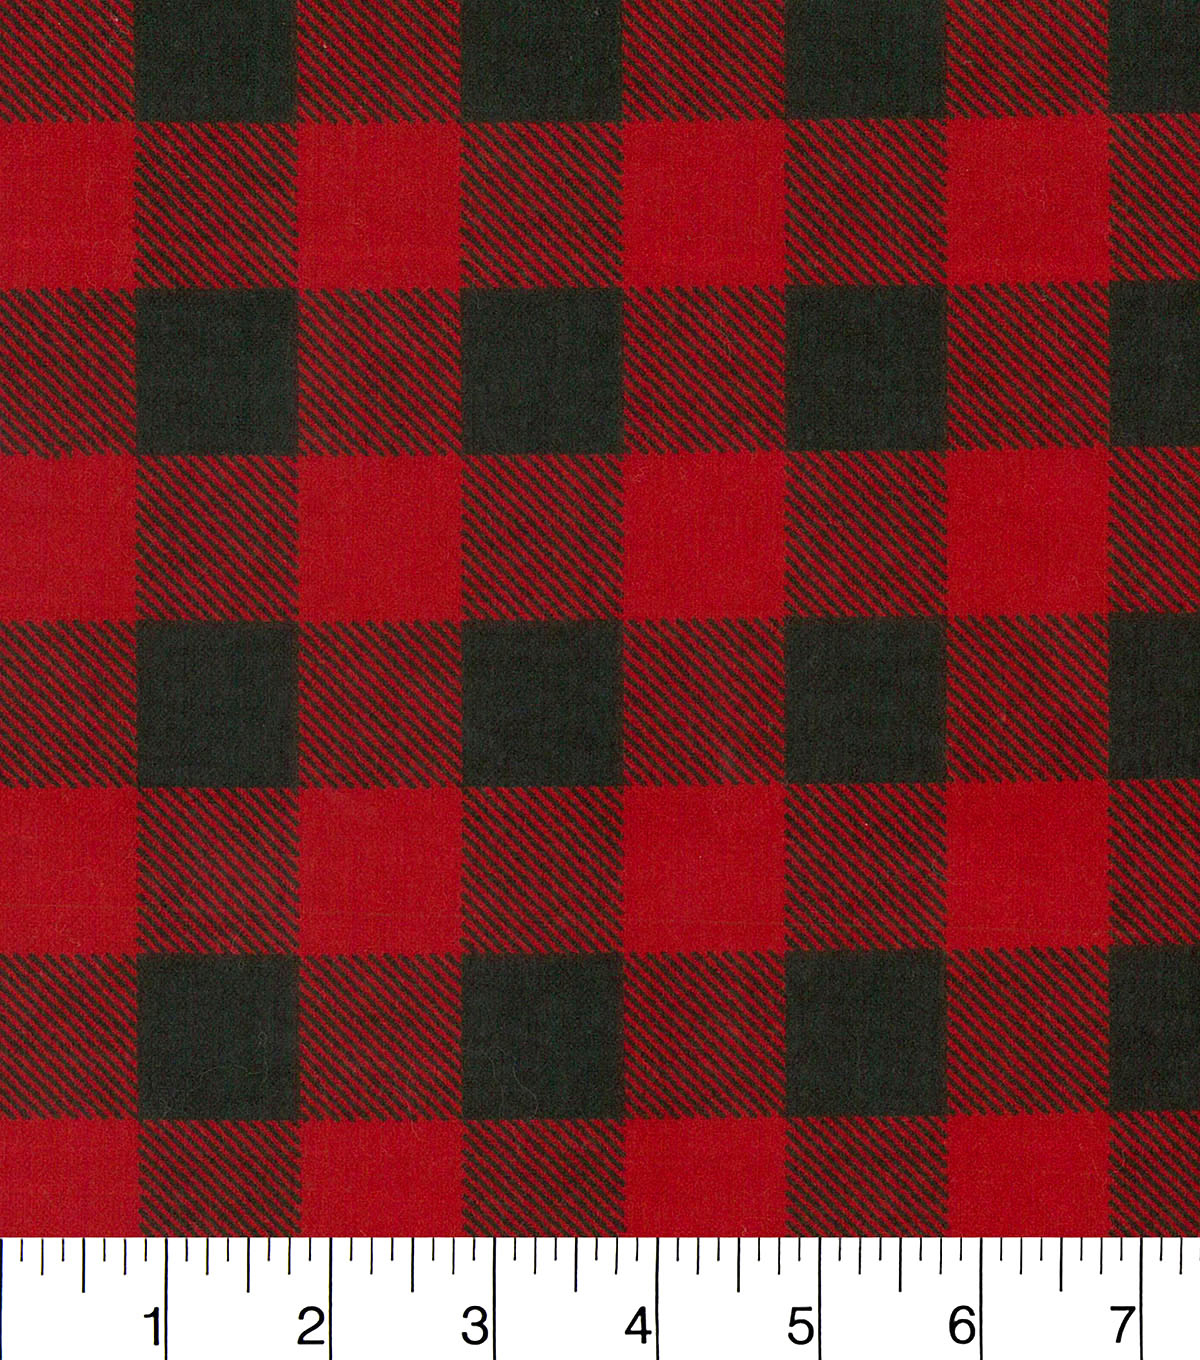 Snuggle Flannel Fabric 42 Red Black